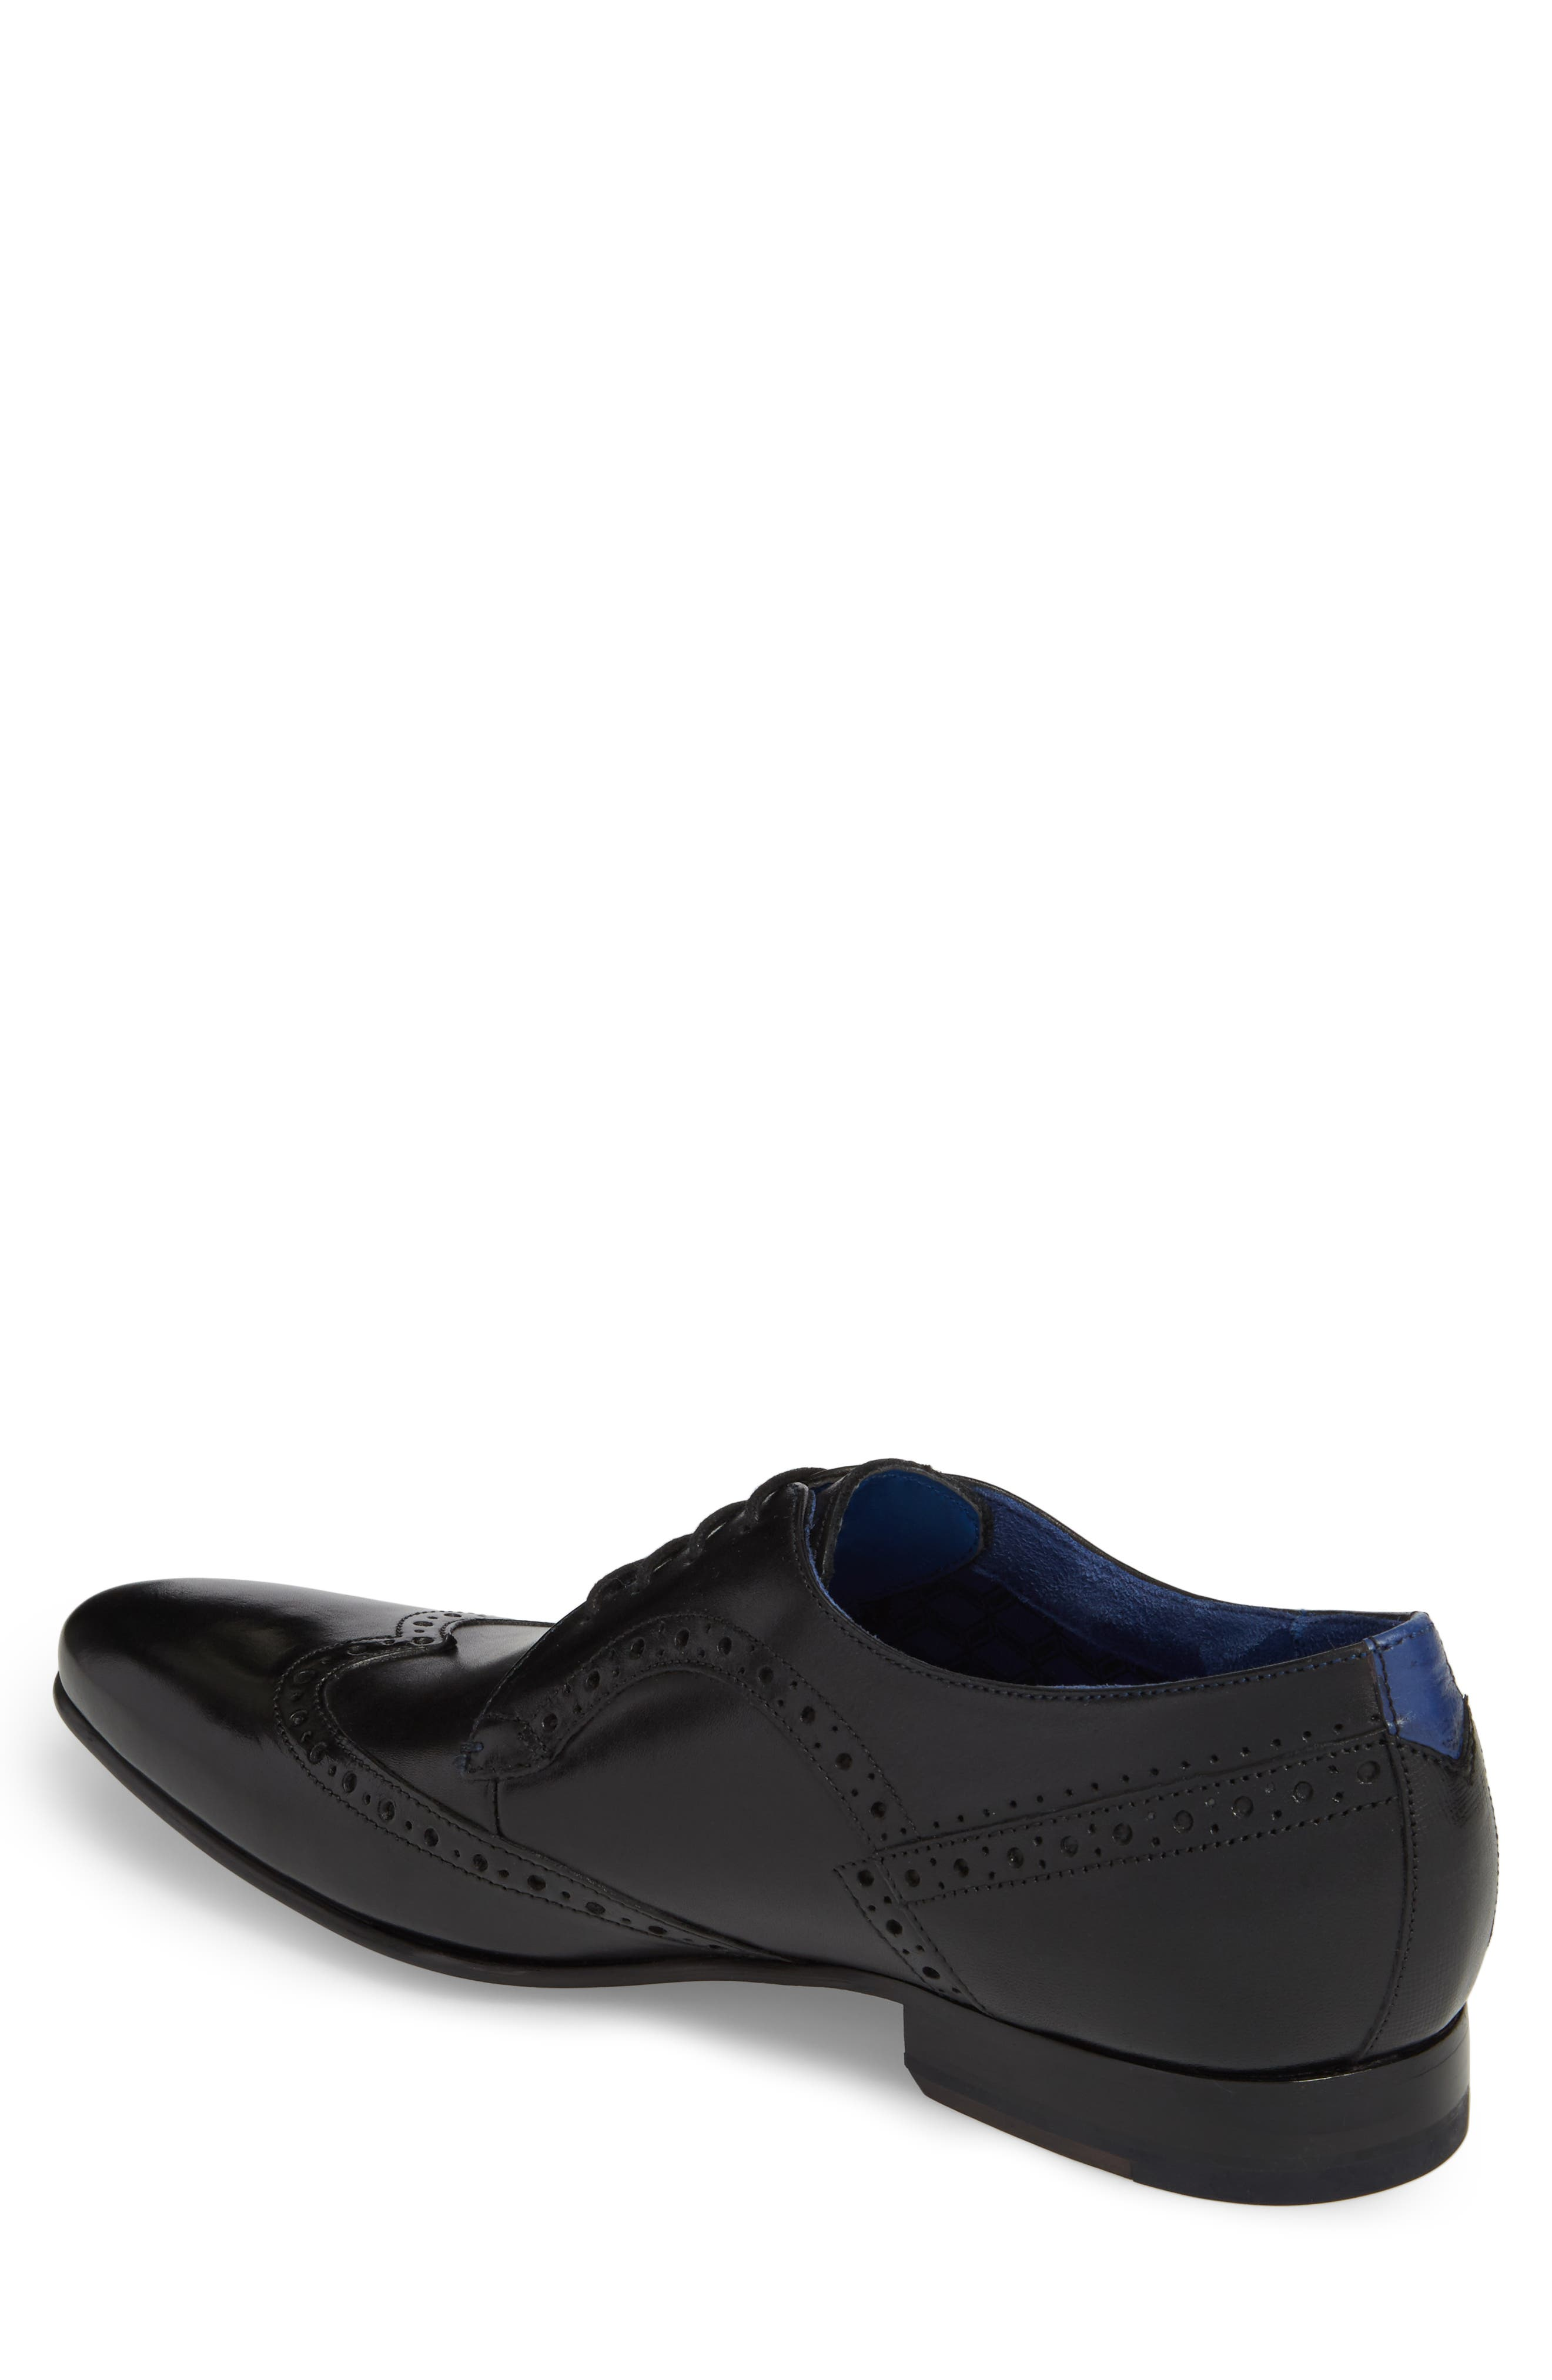 Ollivur Wingtip,                             Alternate thumbnail 2, color,                             Black Leather